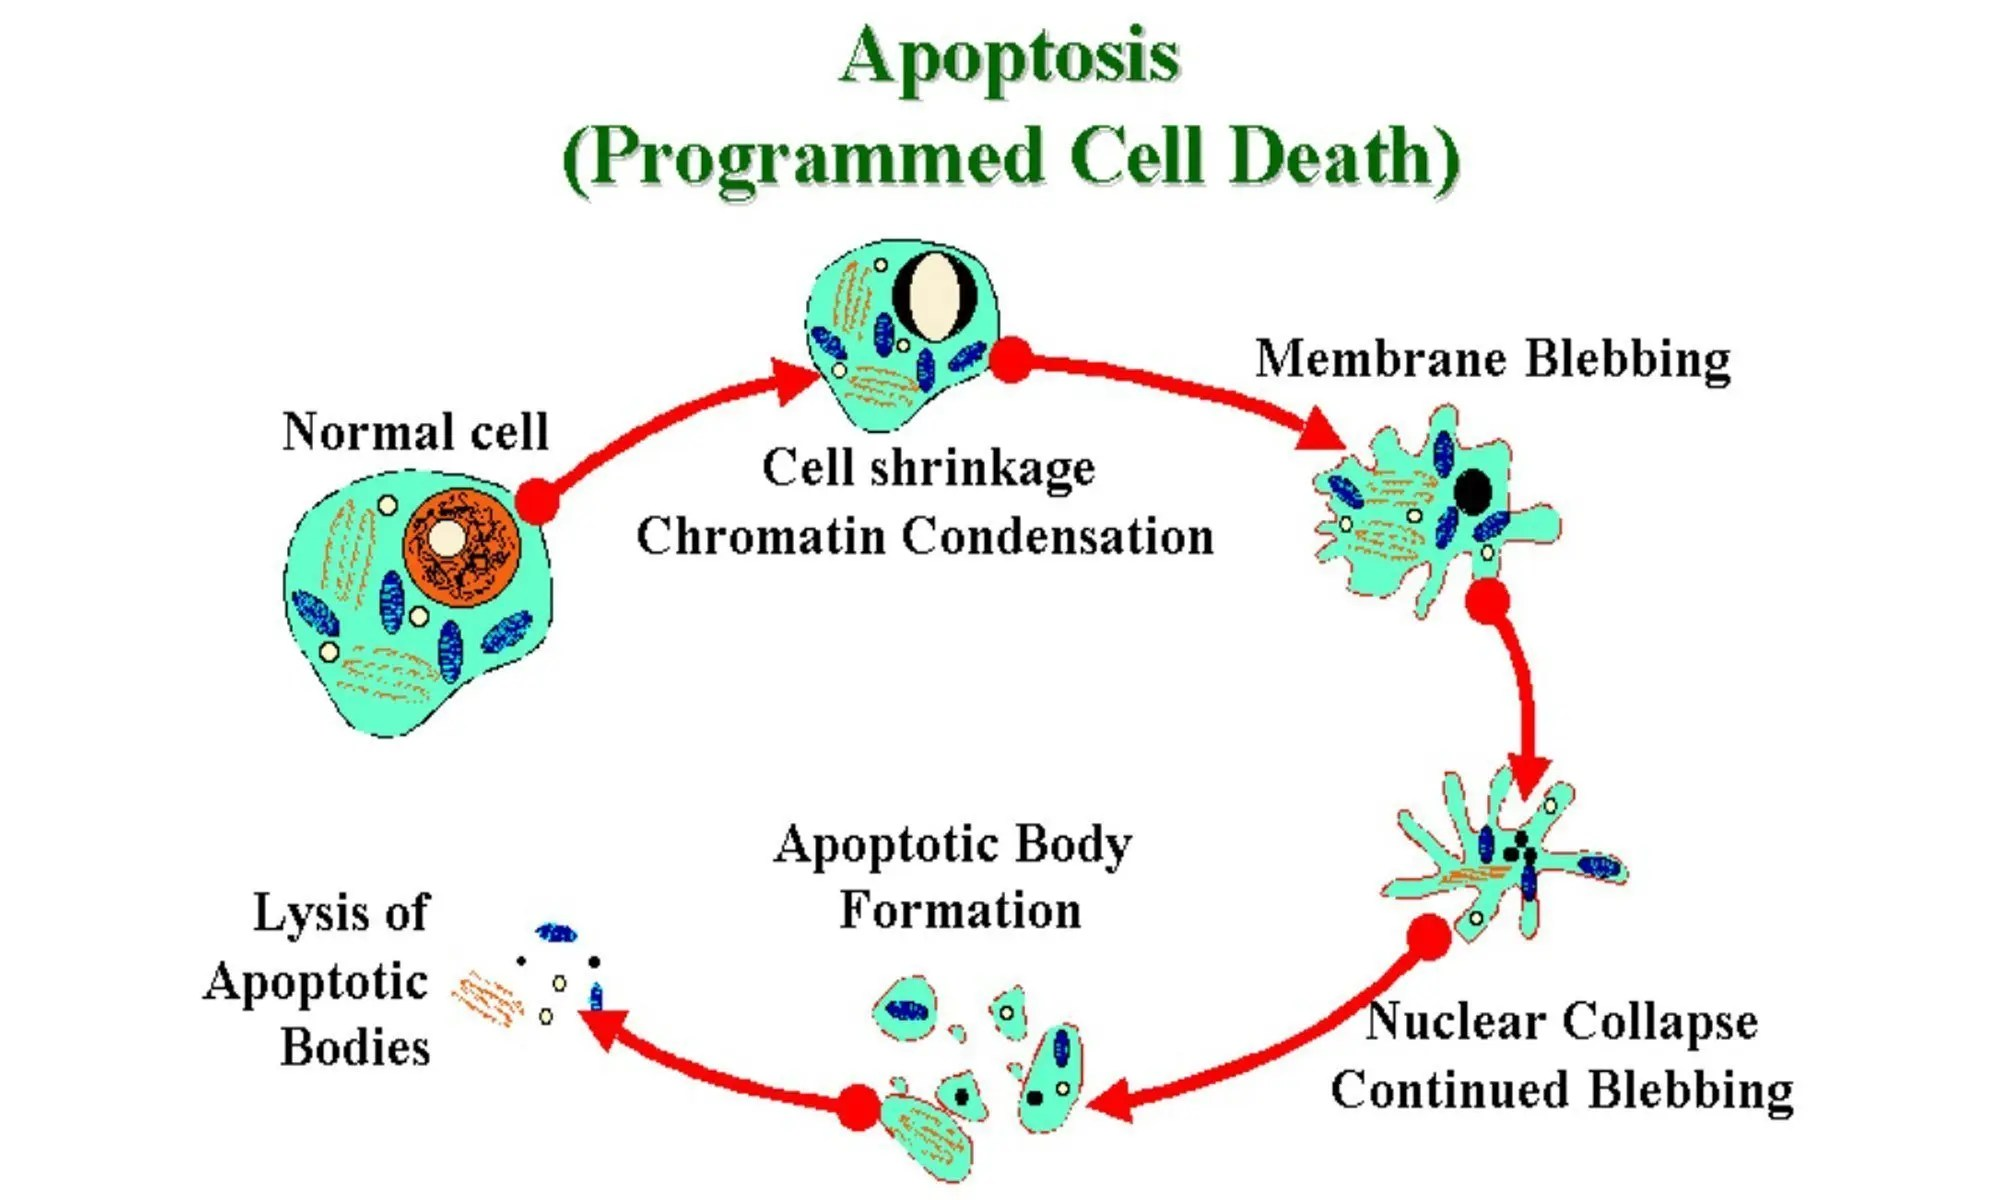 image of apoptosis